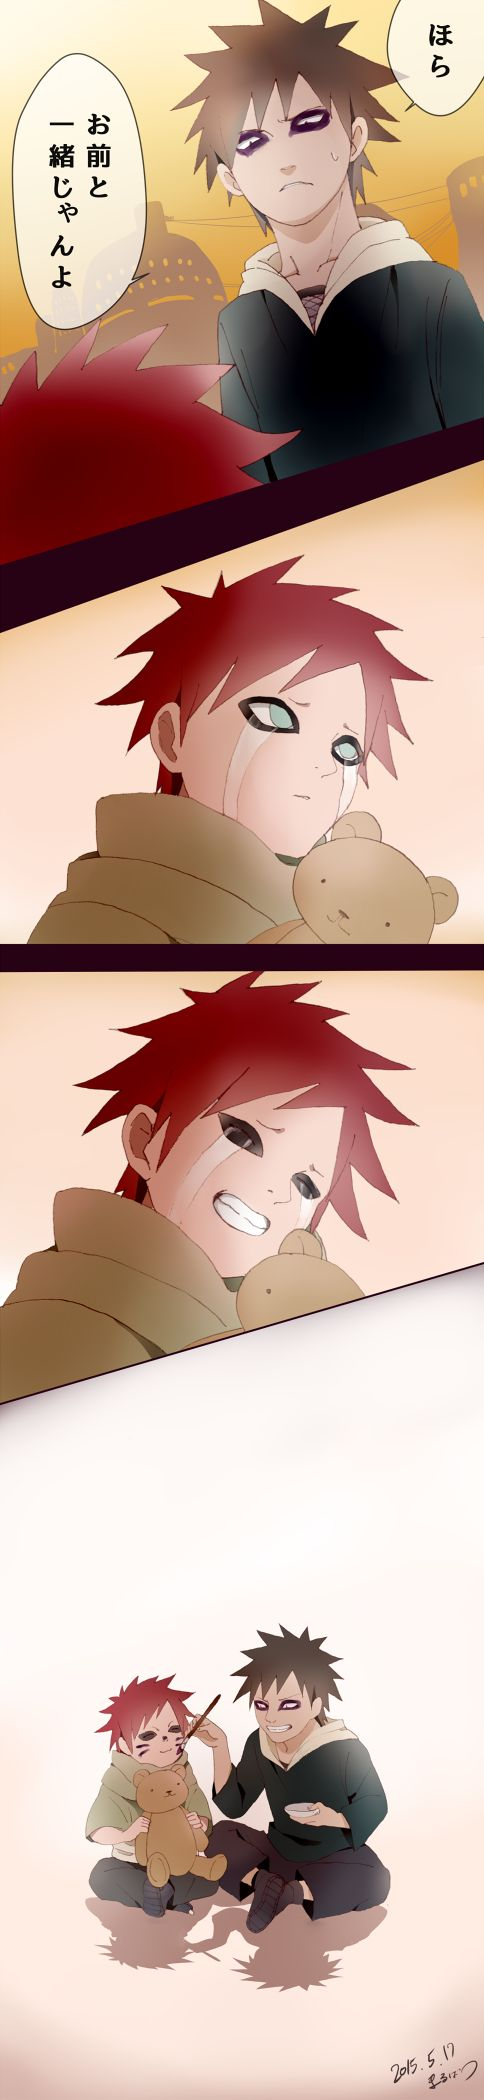 Kankuro and Gaara part2. Brother of the year award goes too... KANKURO OF THE SAND